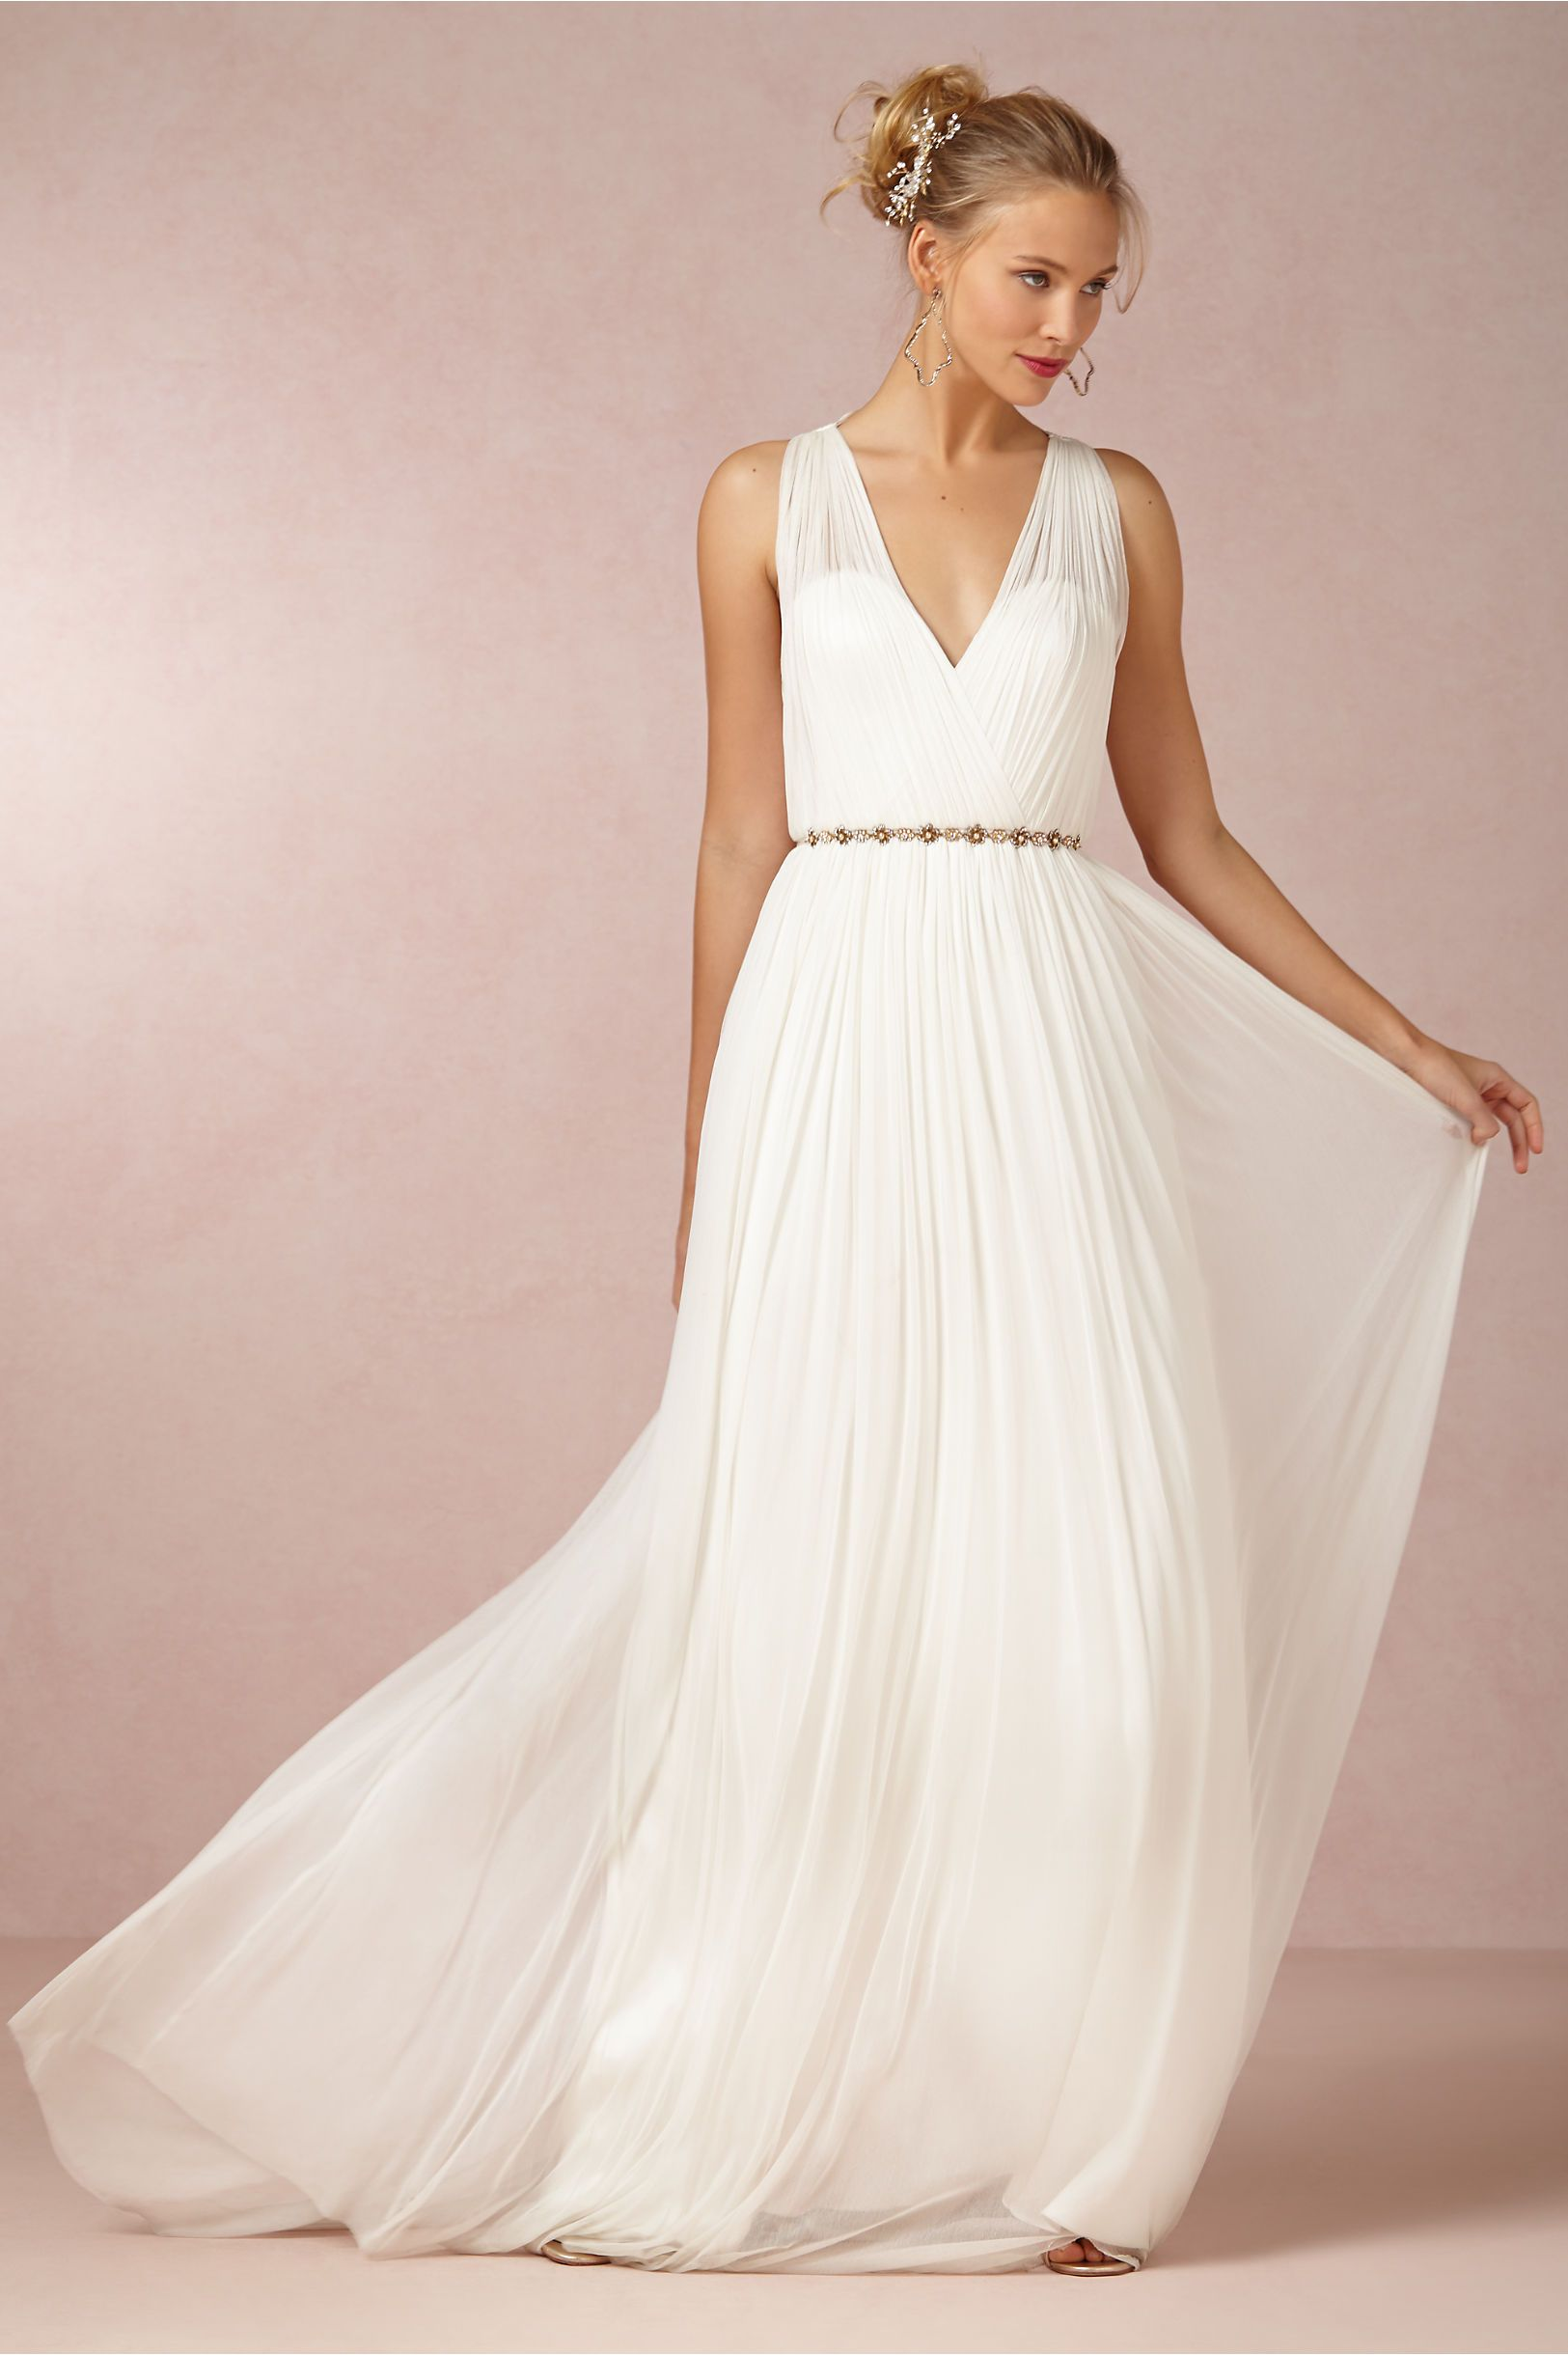 Catherine Deane | Ruth Gown now available at @BHLDN Weddings